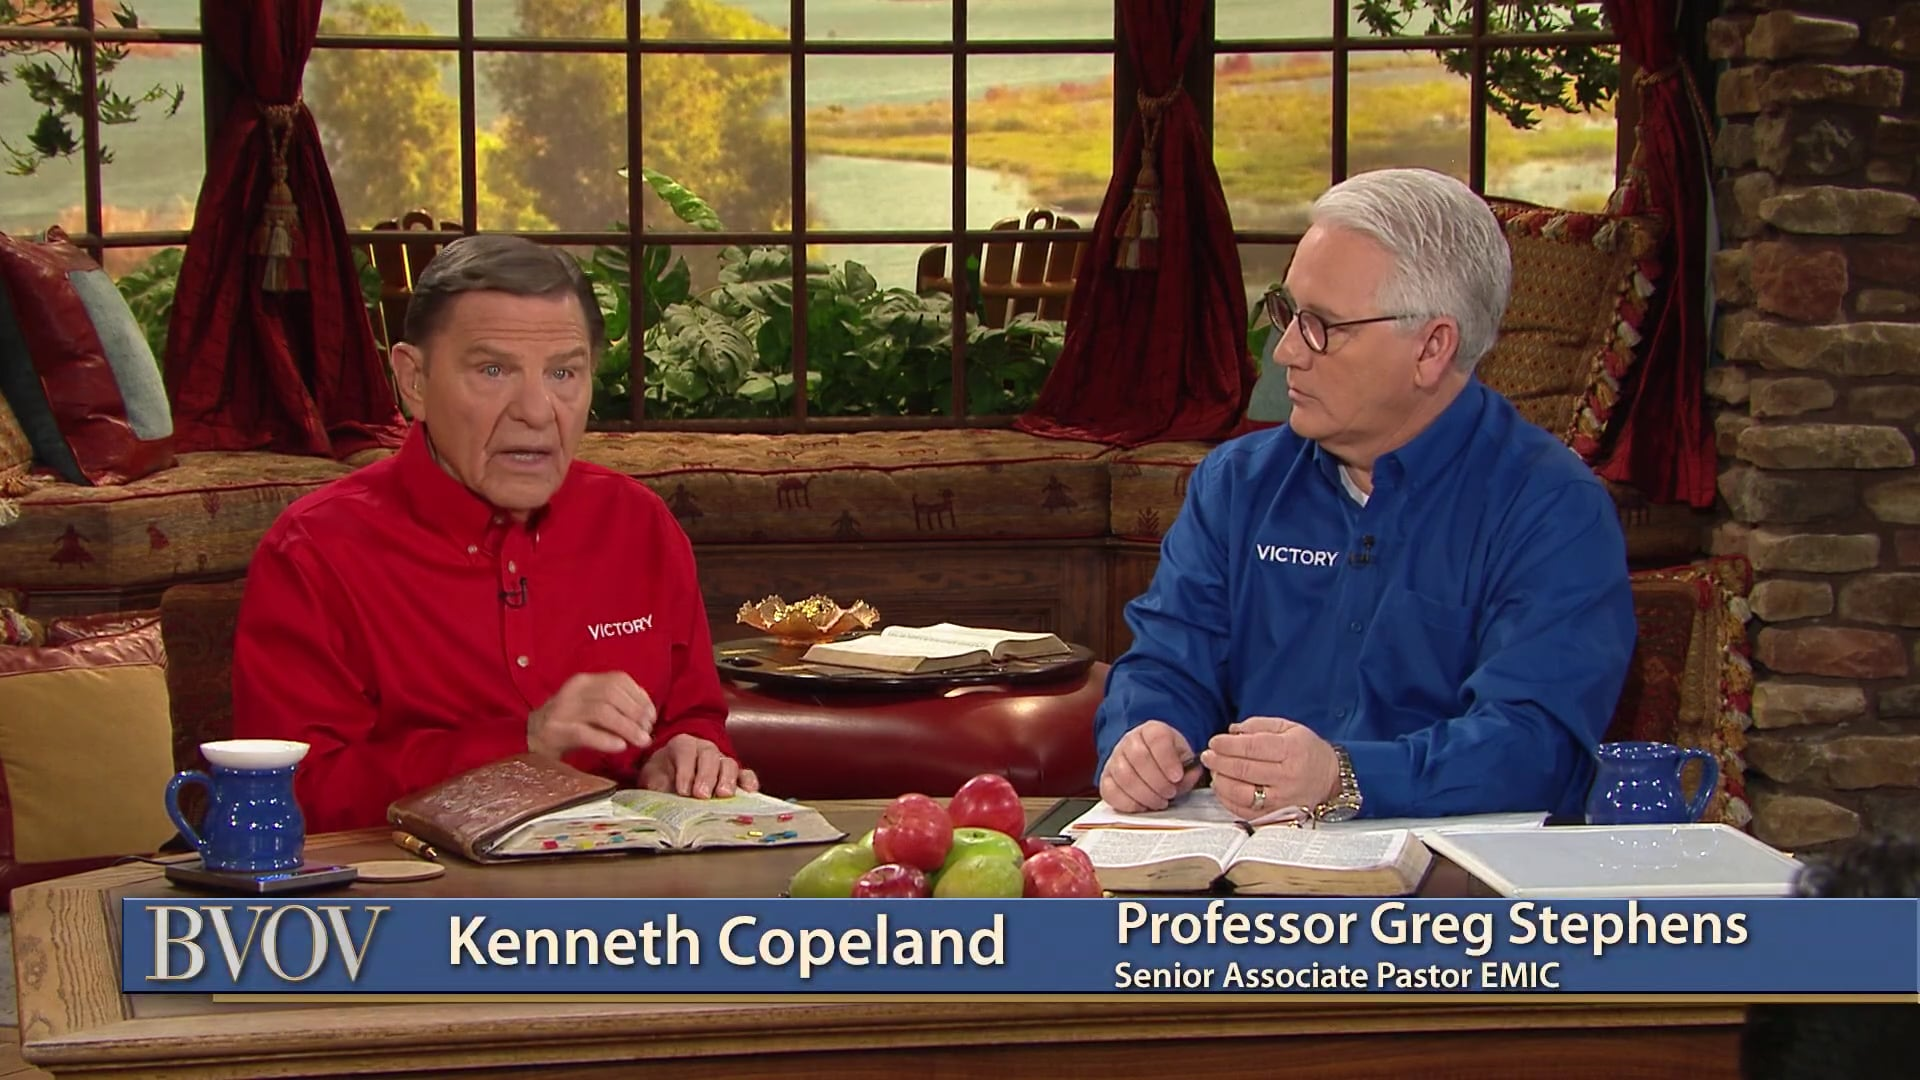 The LORD is good to all! Join Kenneth Copeland and Professor Greg Stephens on Believer's Voice of Victory as they discuss how our covenant God is full of compassion—even when it comes to judgment. When you understand God's timing, you will be at peace no matter what is going on around you!